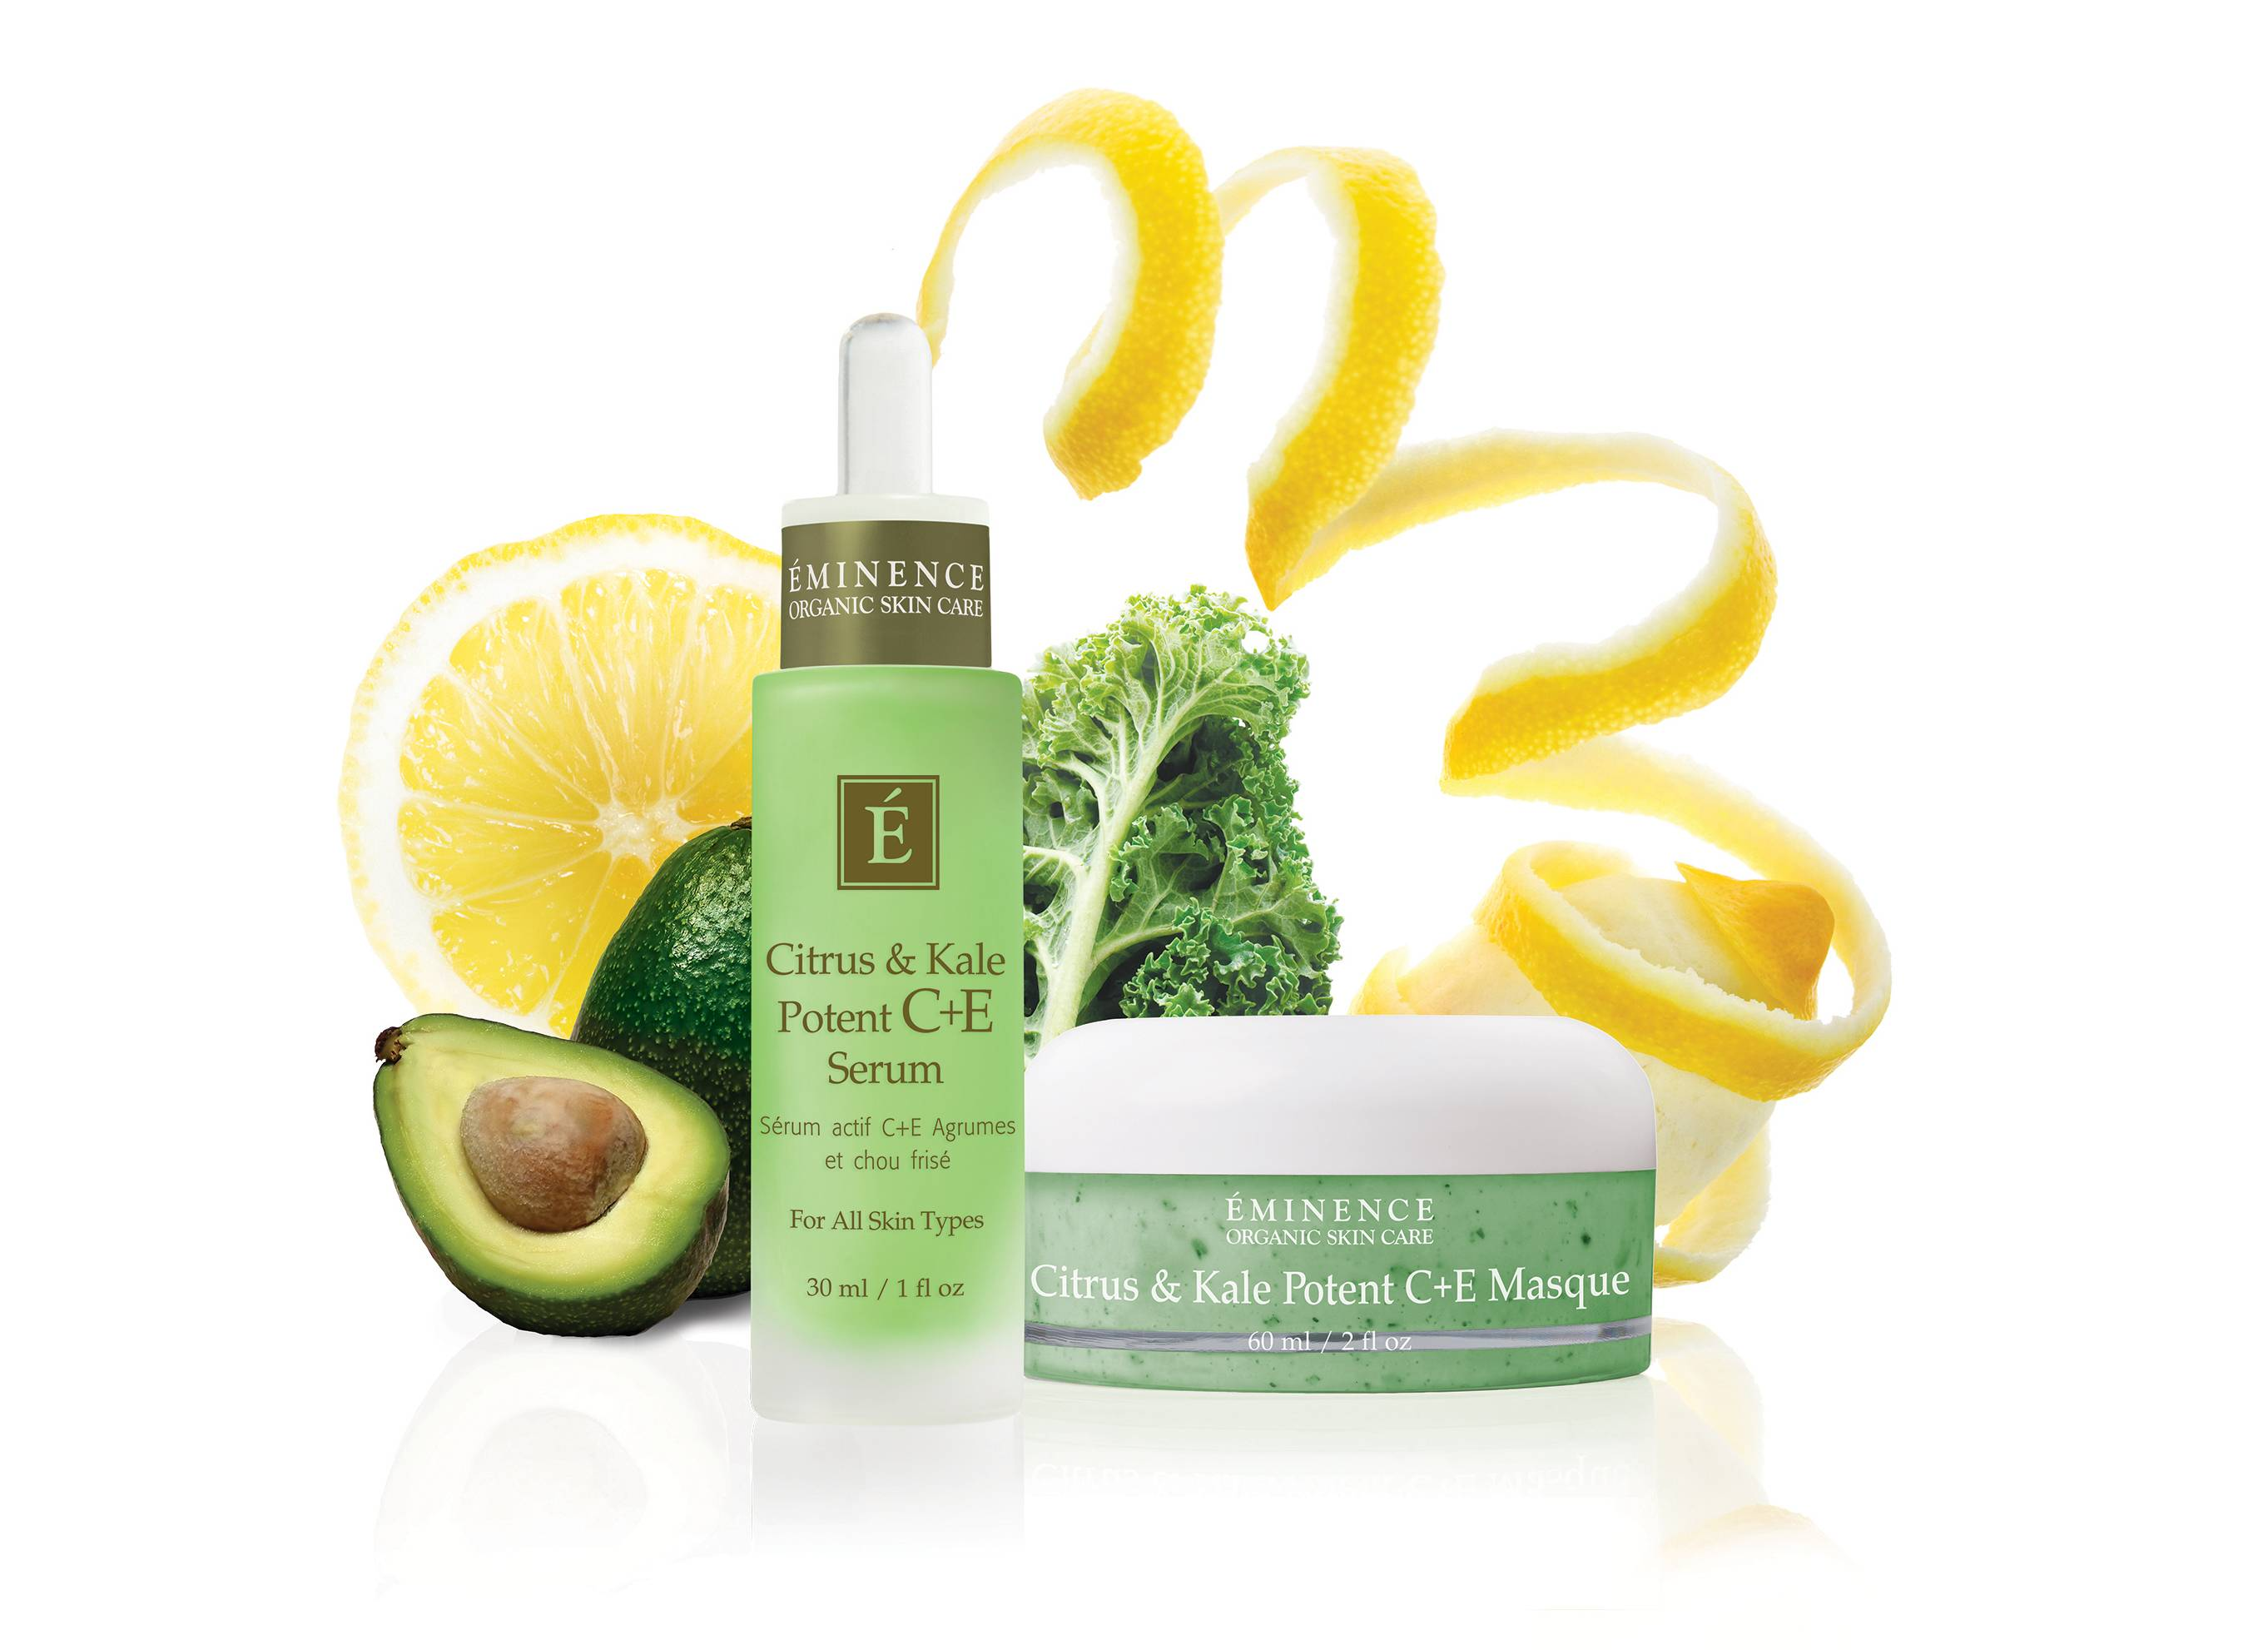 With a boost in popularity as a food and juic, kale has made its way into the beauty industry, such as with Citrus & Kale Potent C+E Serum, left, and Citrus & Kale Potent C+E Masque made with kale.